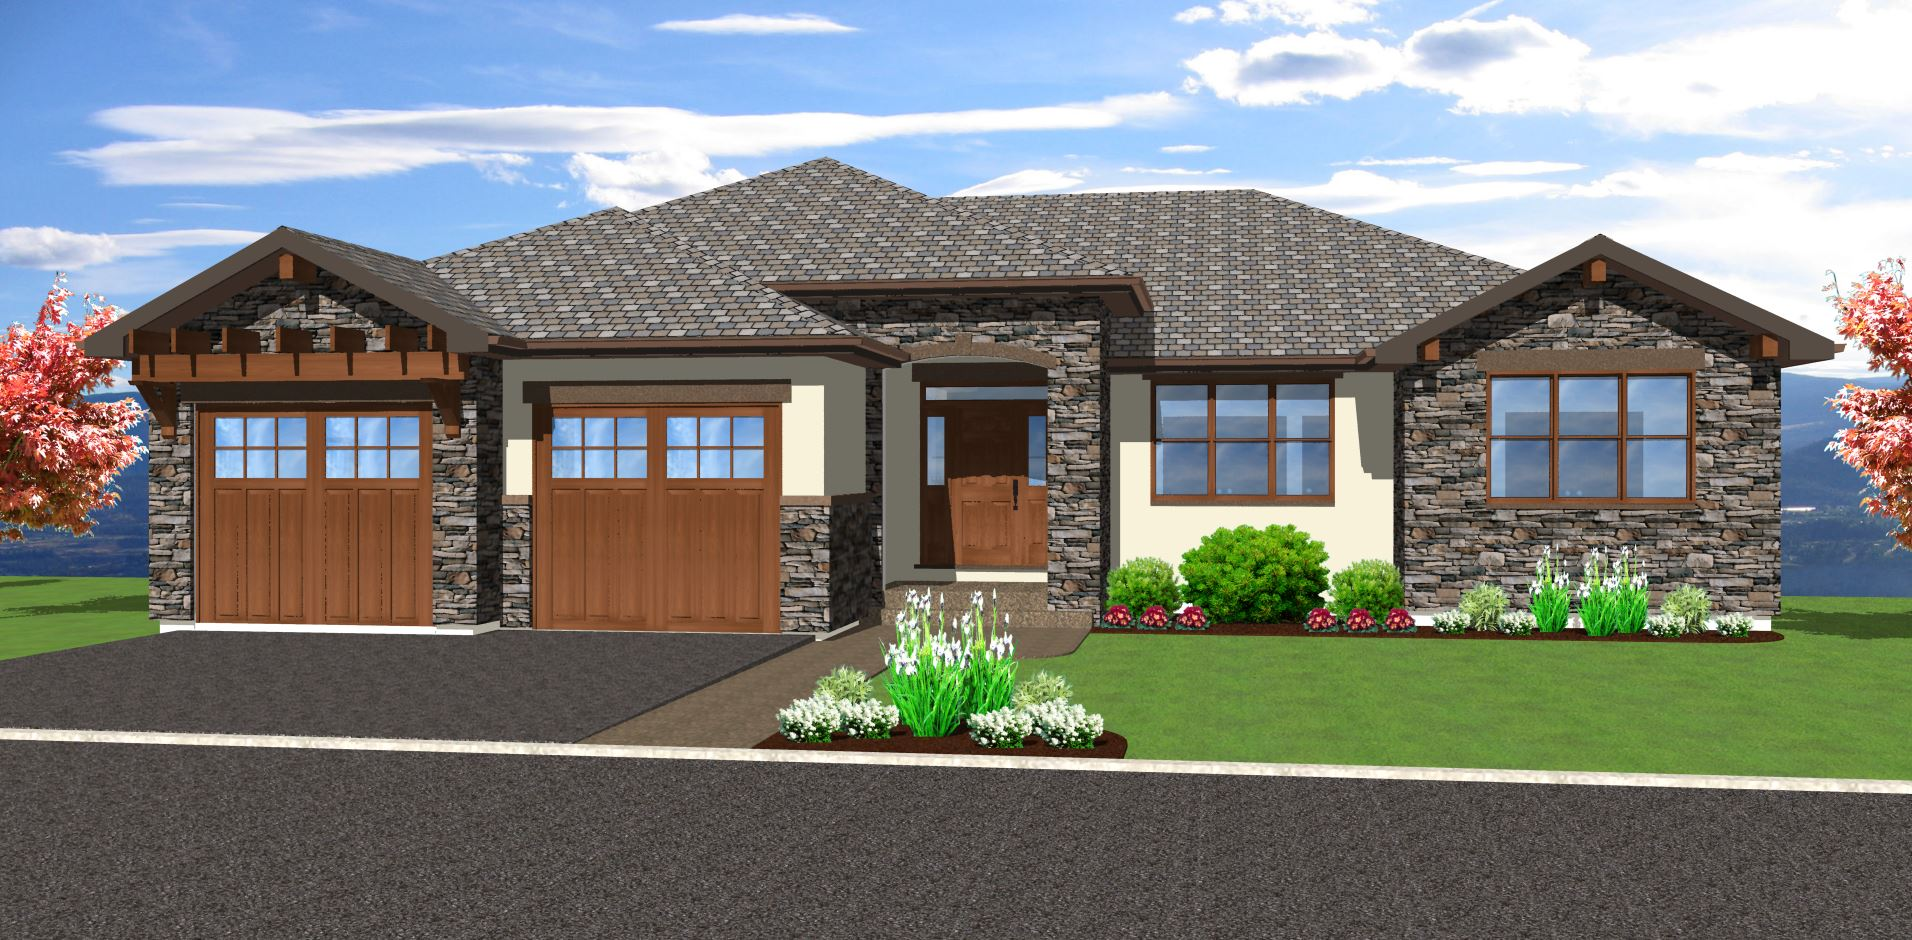 Spacious hillside home with walkout basement 67702mg for Modern home plans with basement